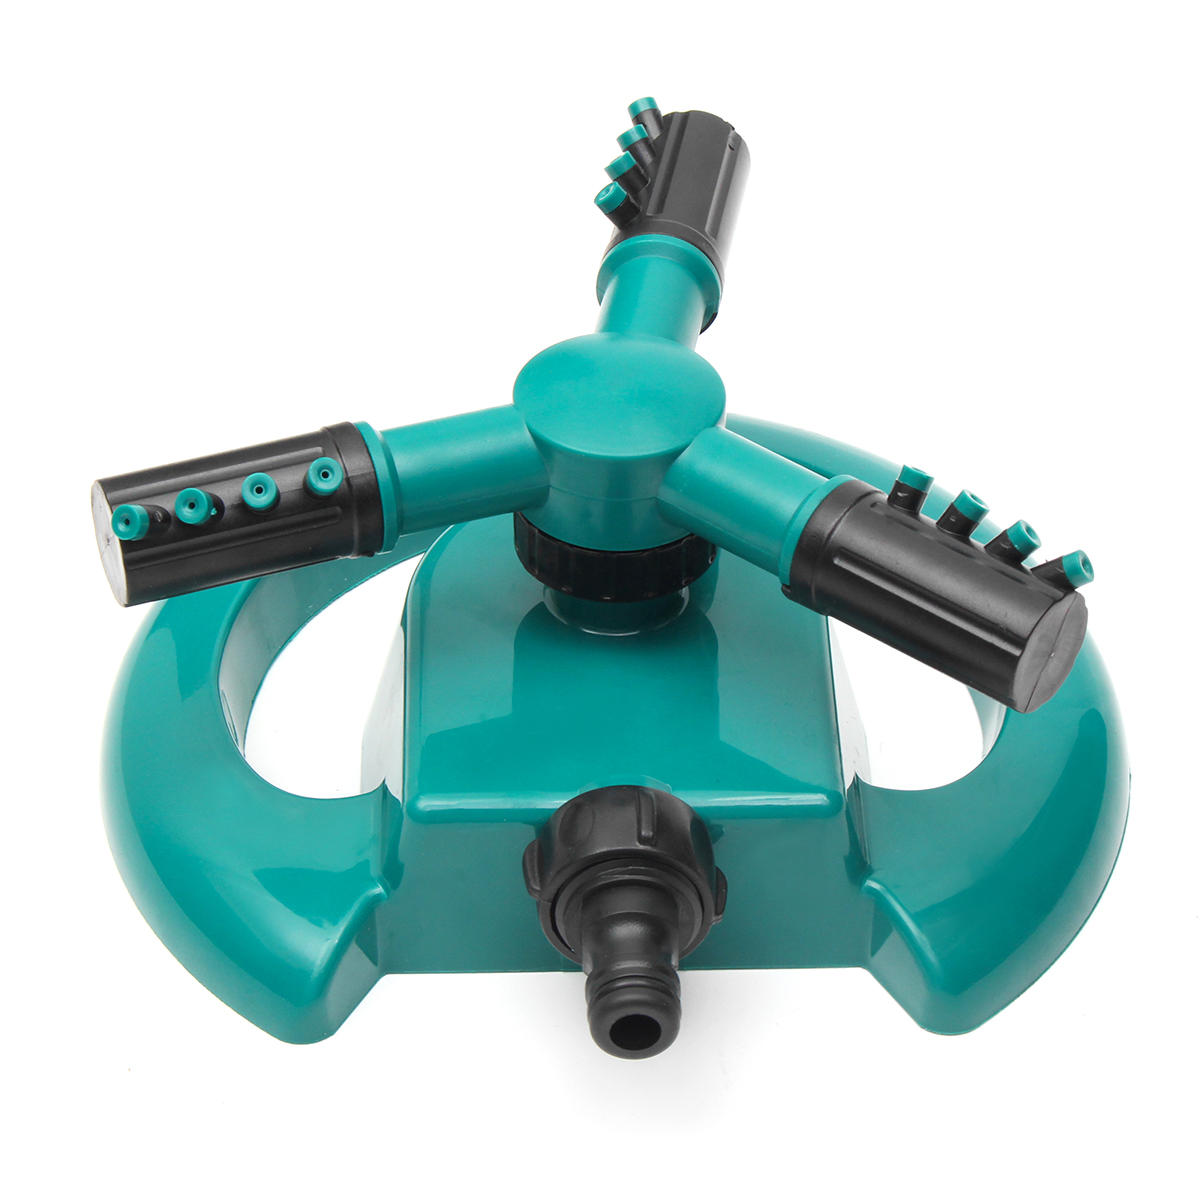 360 Degree Automatic Rotating Watering Revolving Sprinkler 3 Nozzle Irrigation System Lawn Watering фото